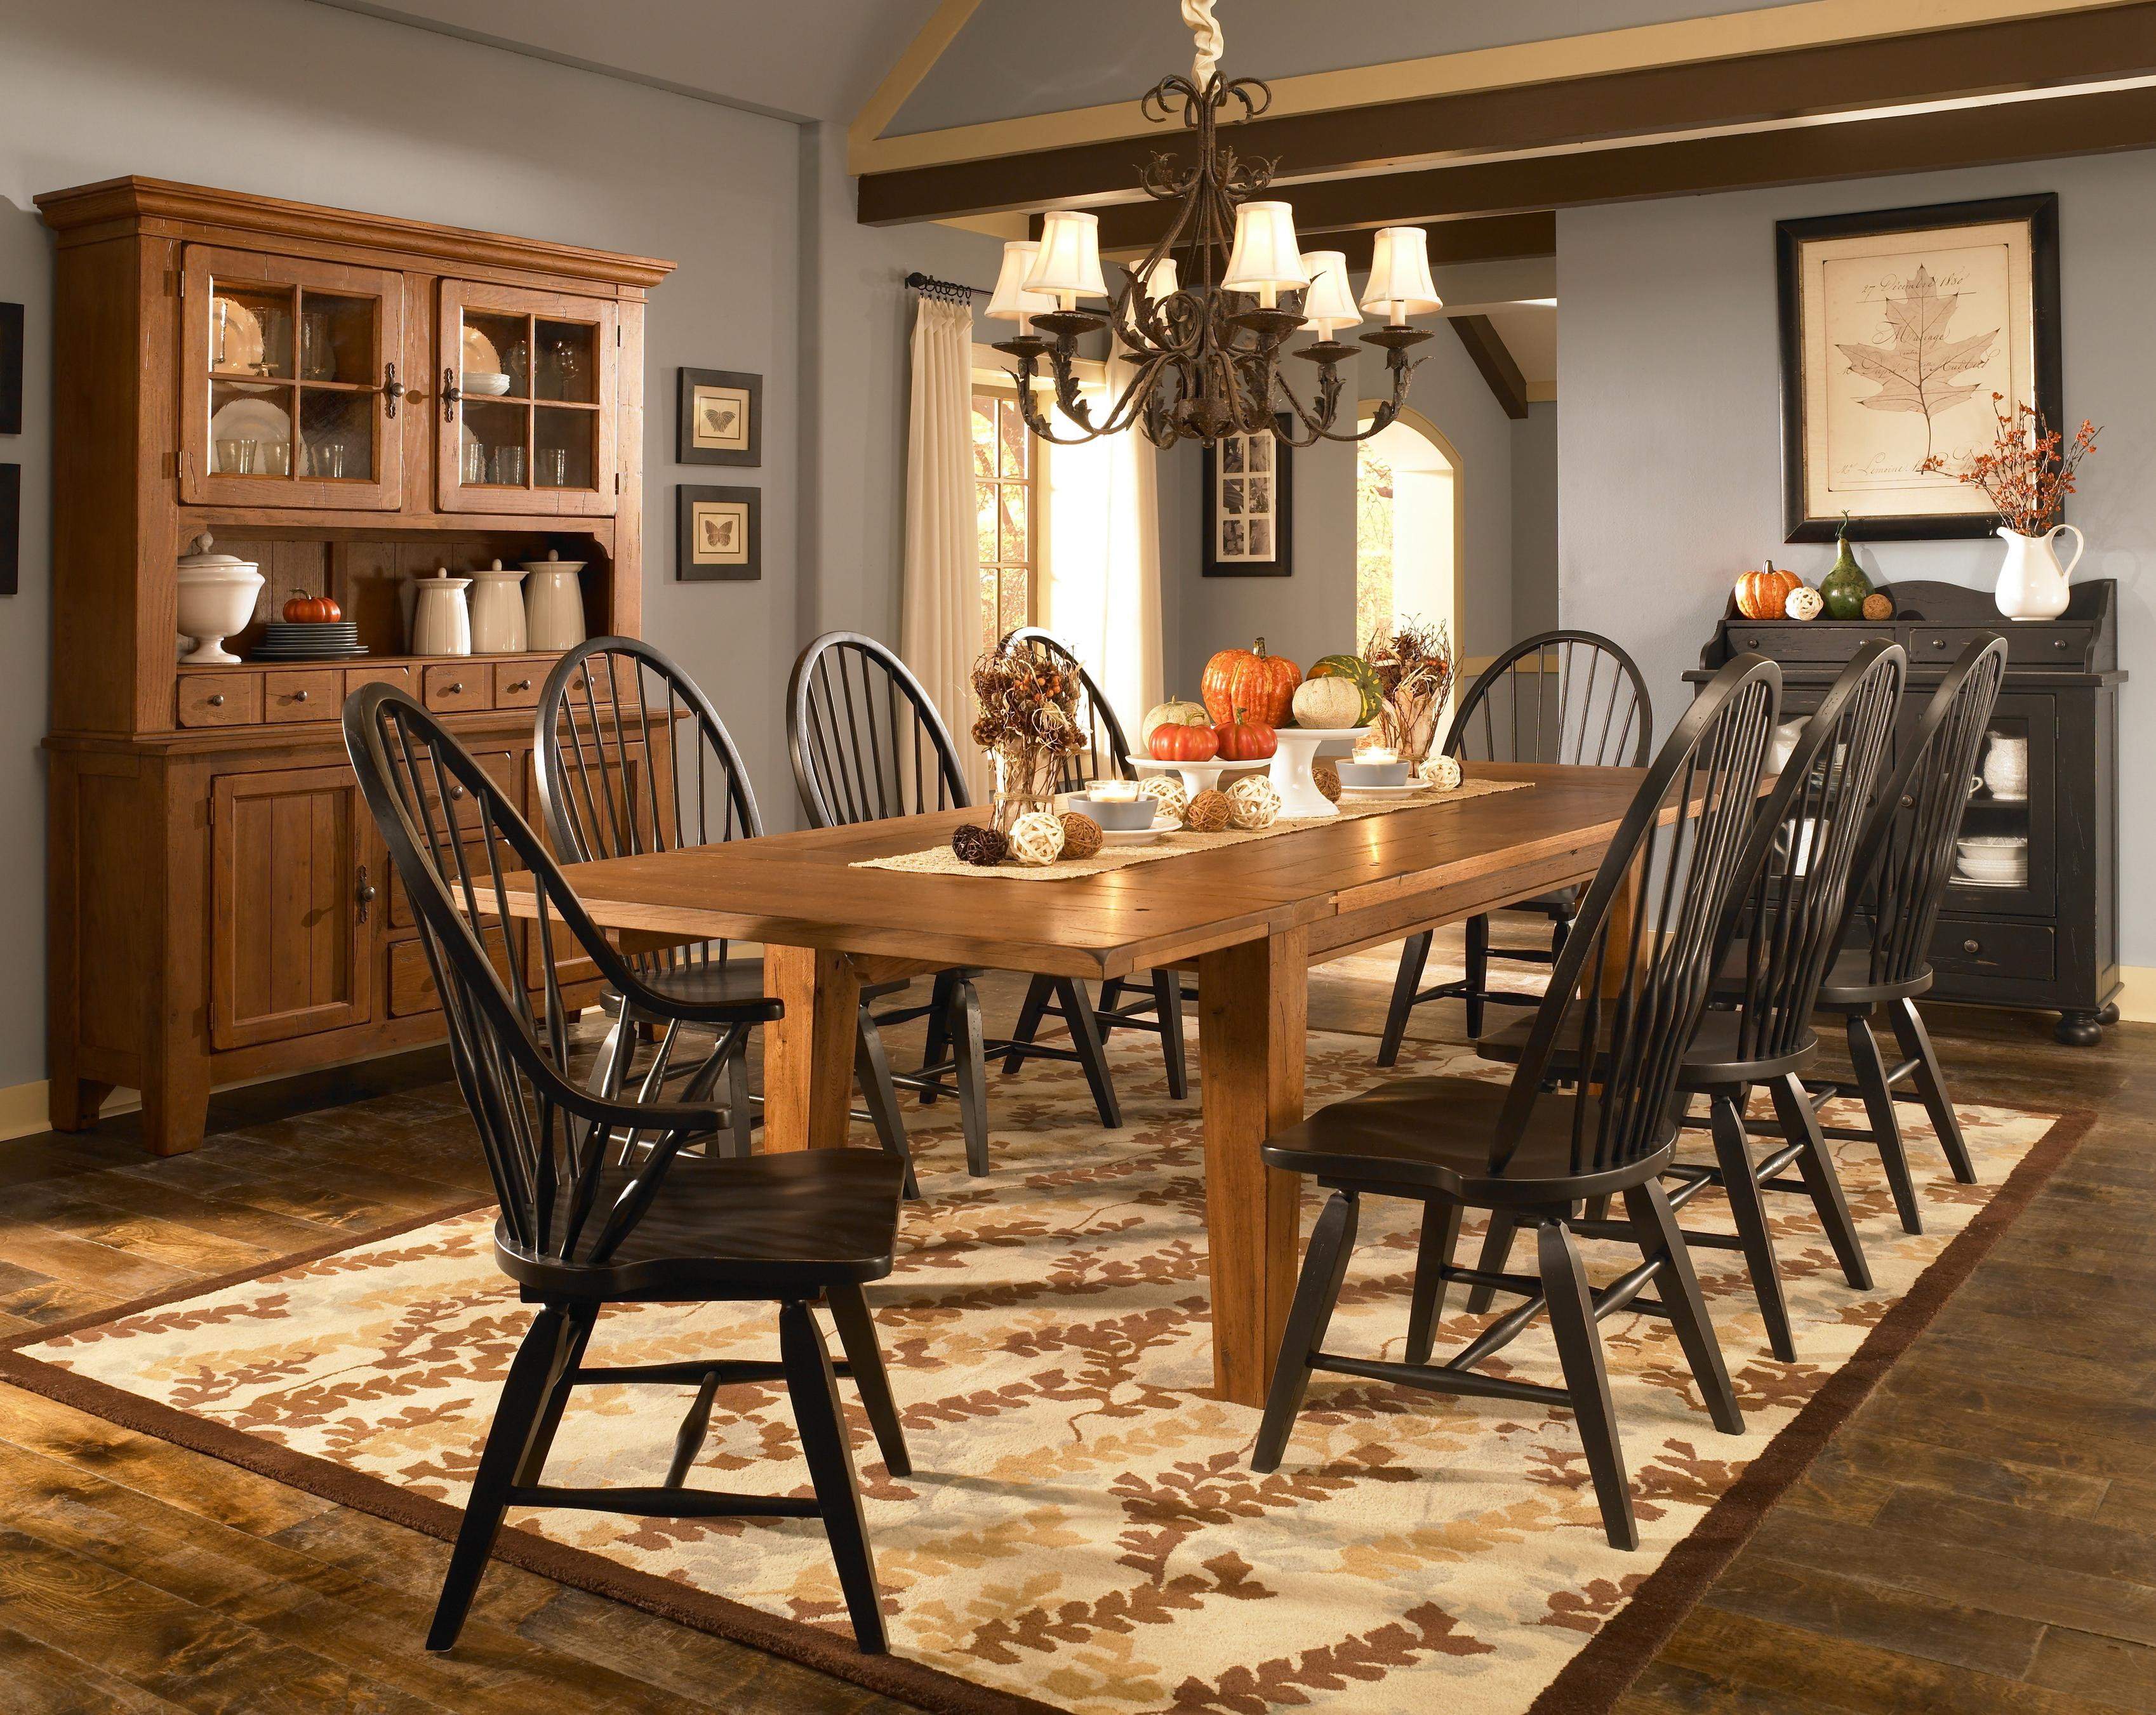 Leg Dining Table With Leaves by Broyhill Furniture | Wolf ...